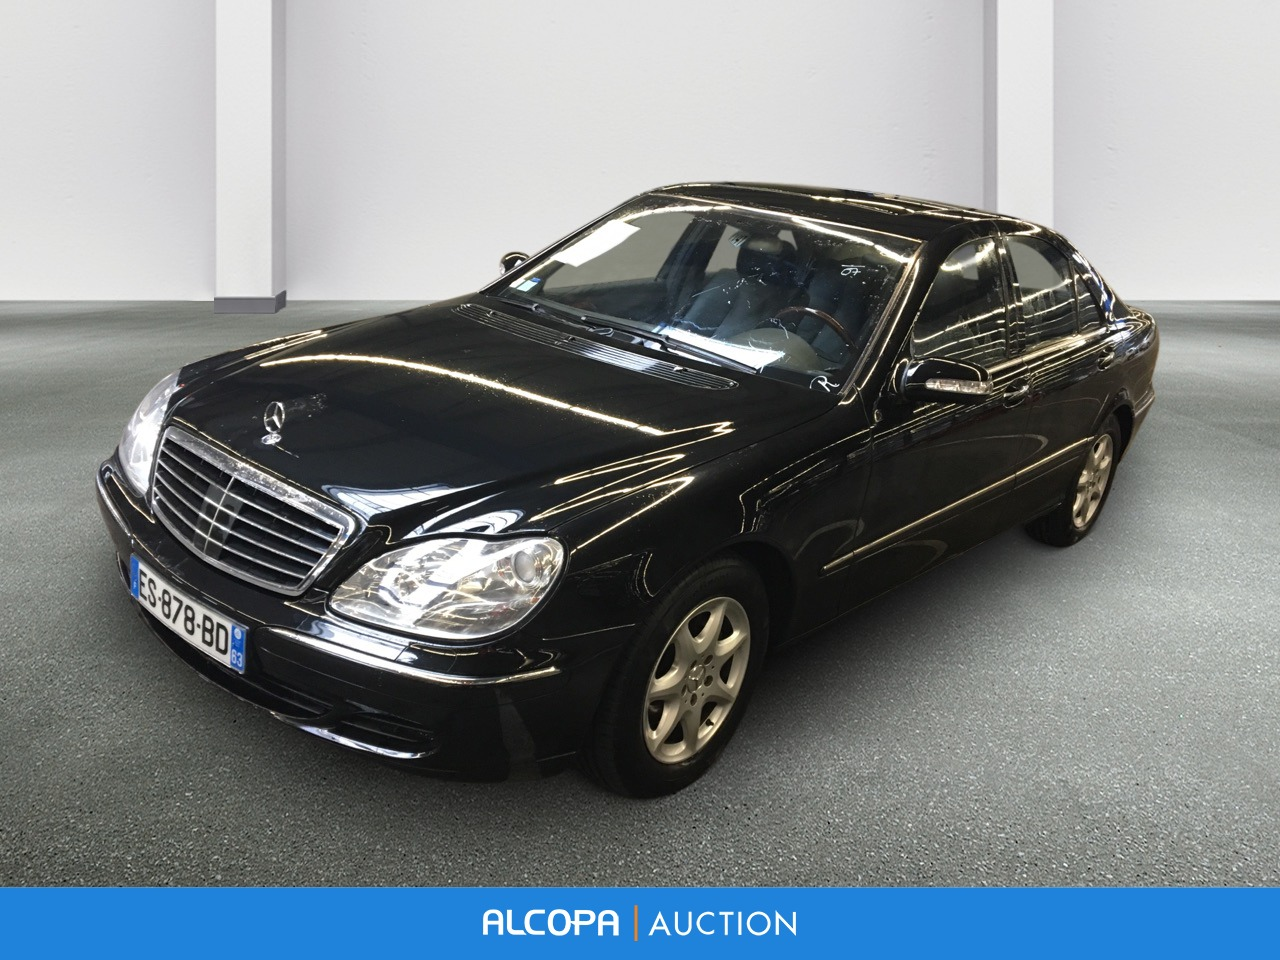 mercedes benz classe s s 500 a alcopa auction. Black Bedroom Furniture Sets. Home Design Ideas